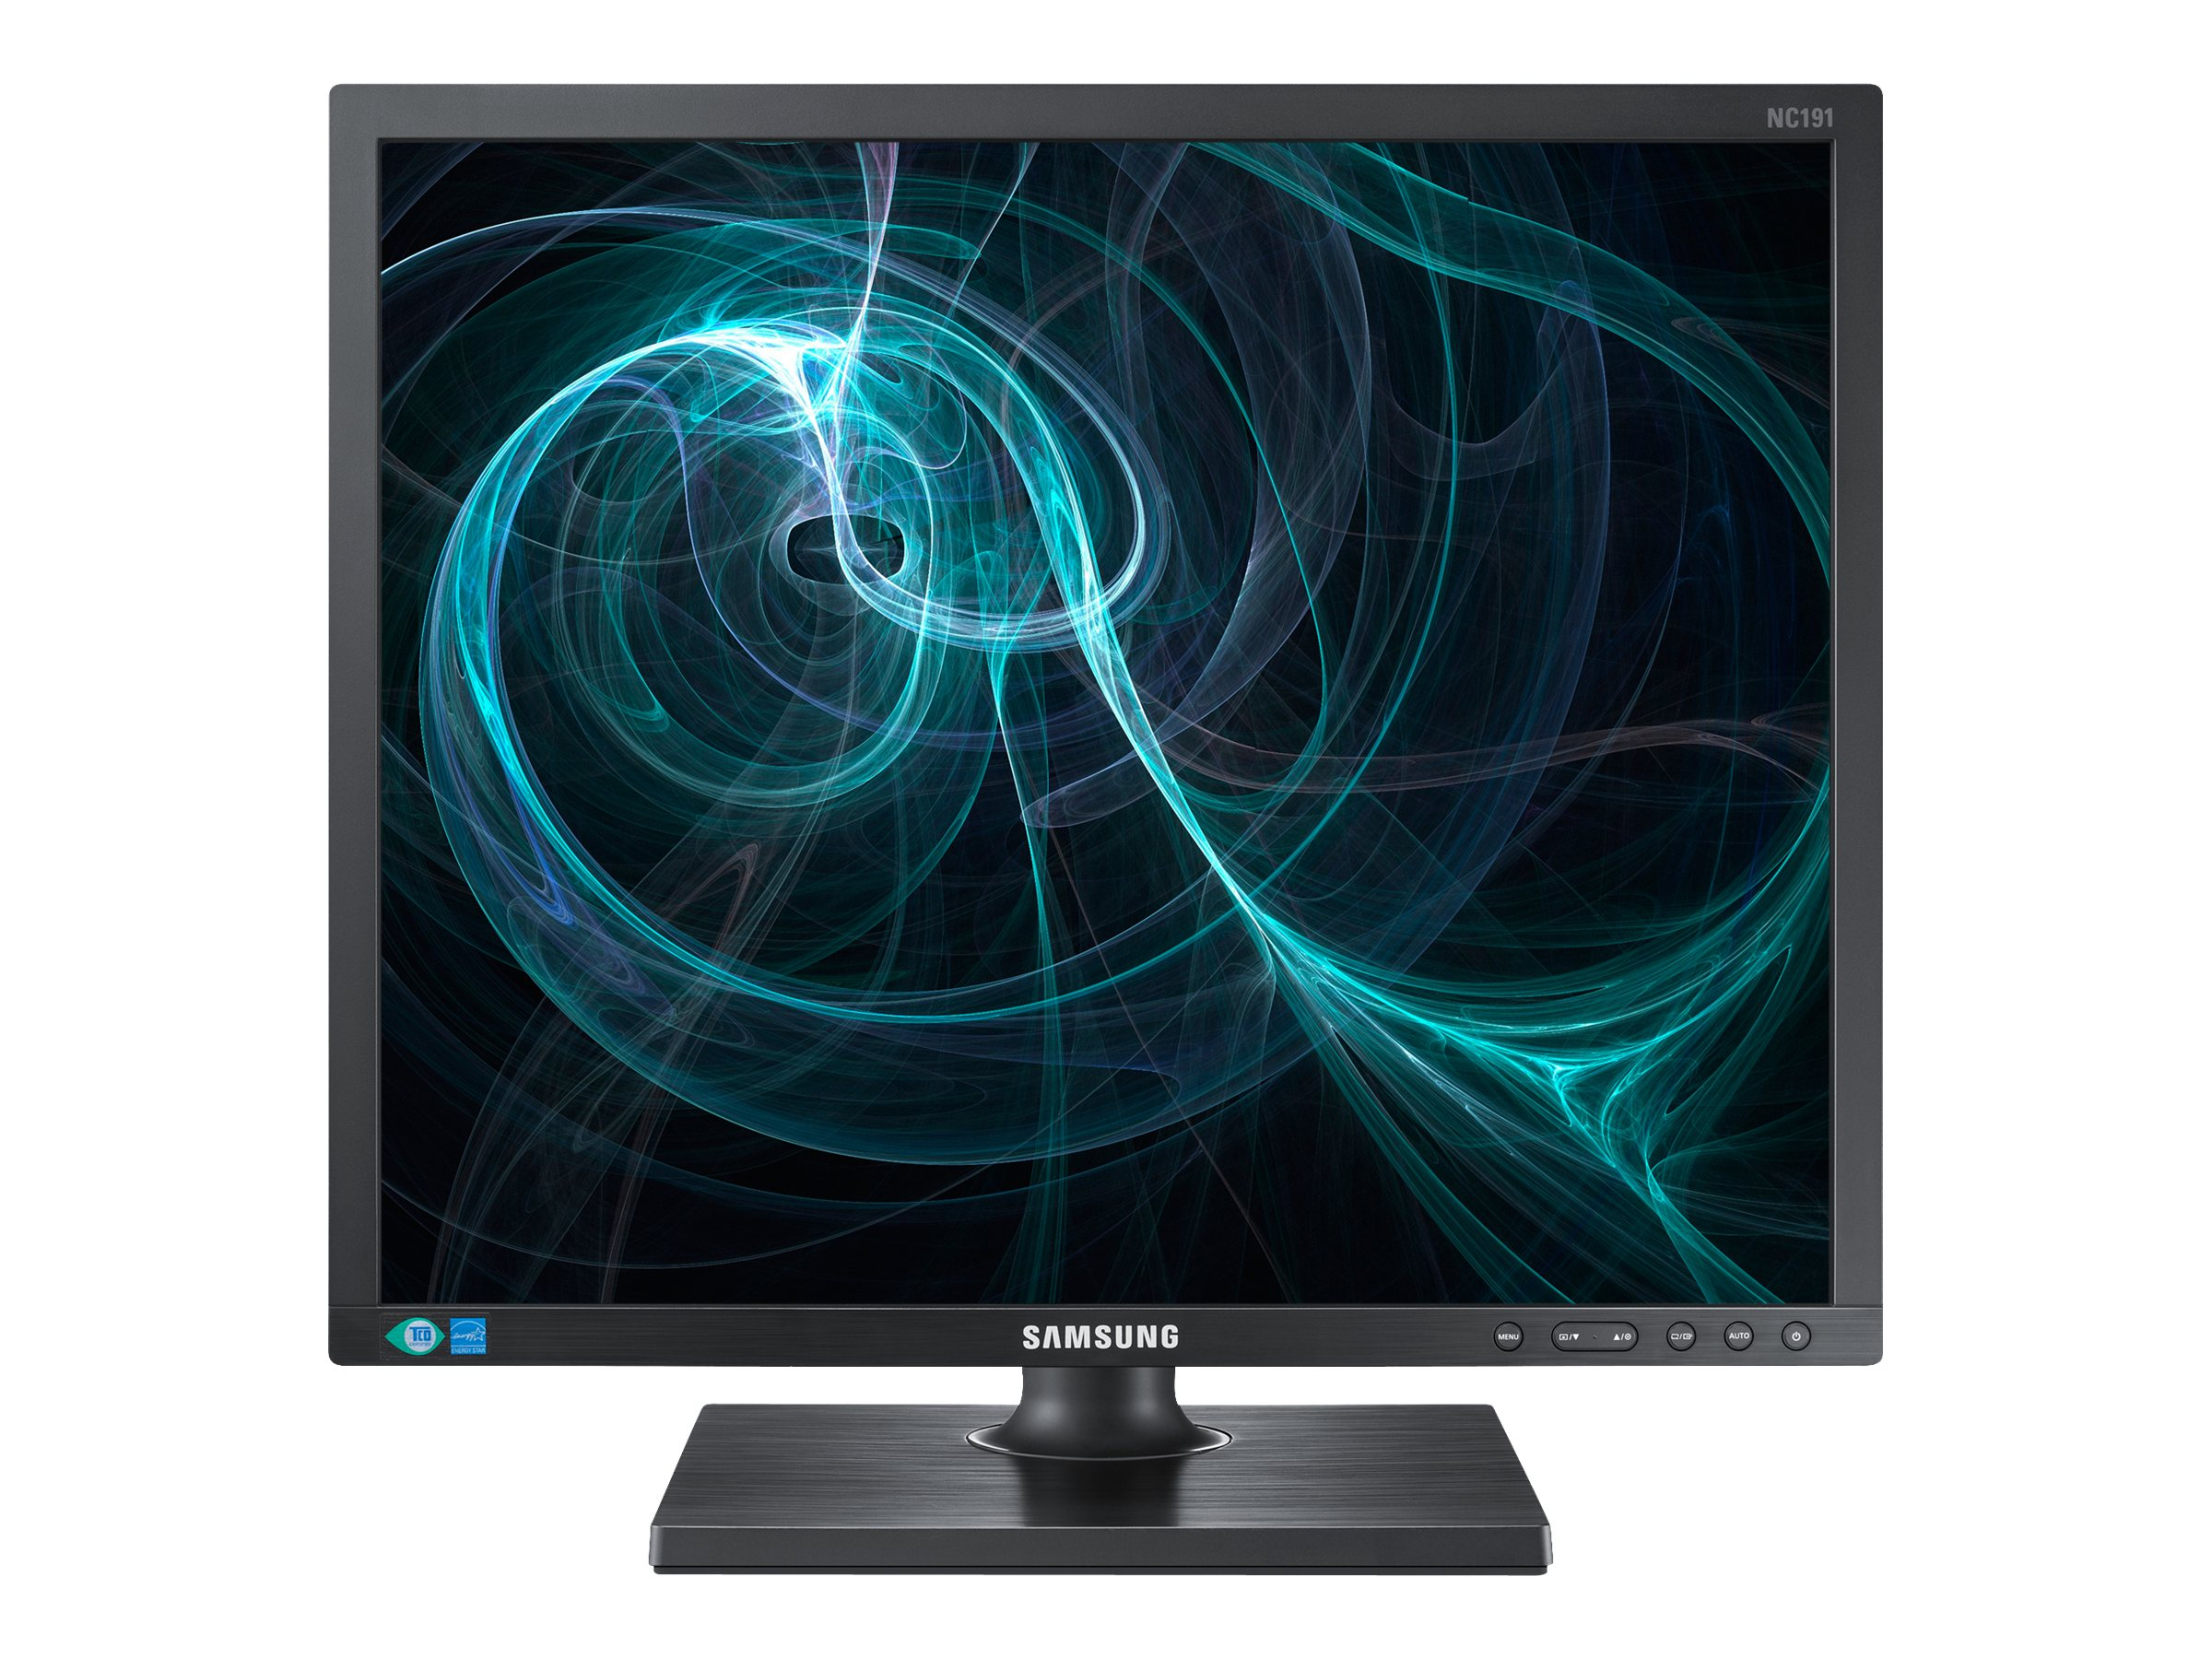 Samsung 19 NC191 Zero Client LED-LCD Monitor, Black, NC191